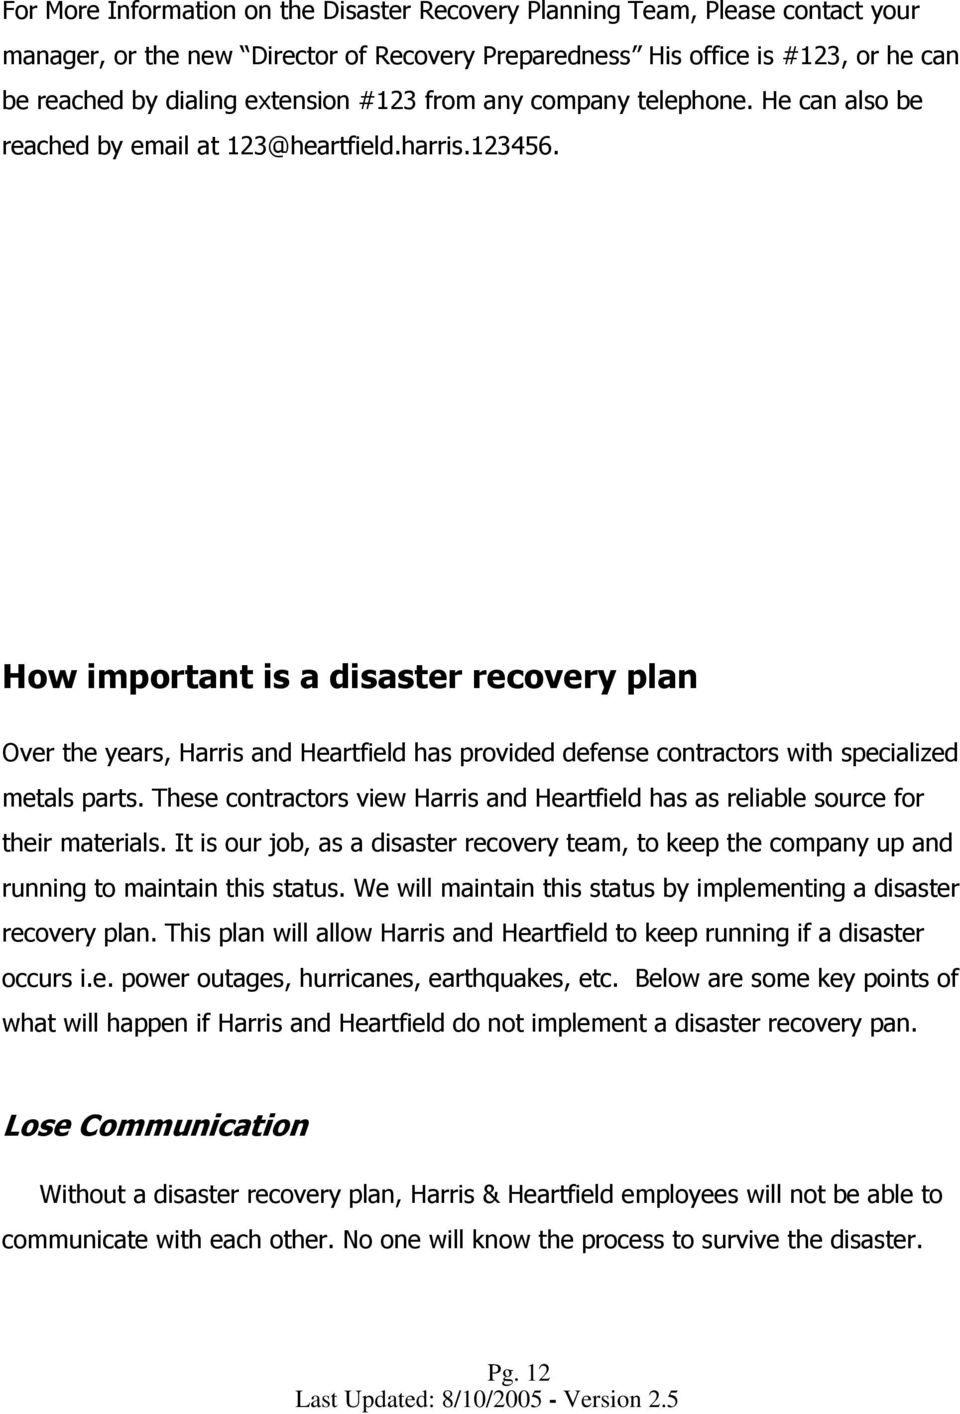 How important is a disaster recovery plan Over the years, Harris and Heartfield has provided defense contractors with specialized metals parts.